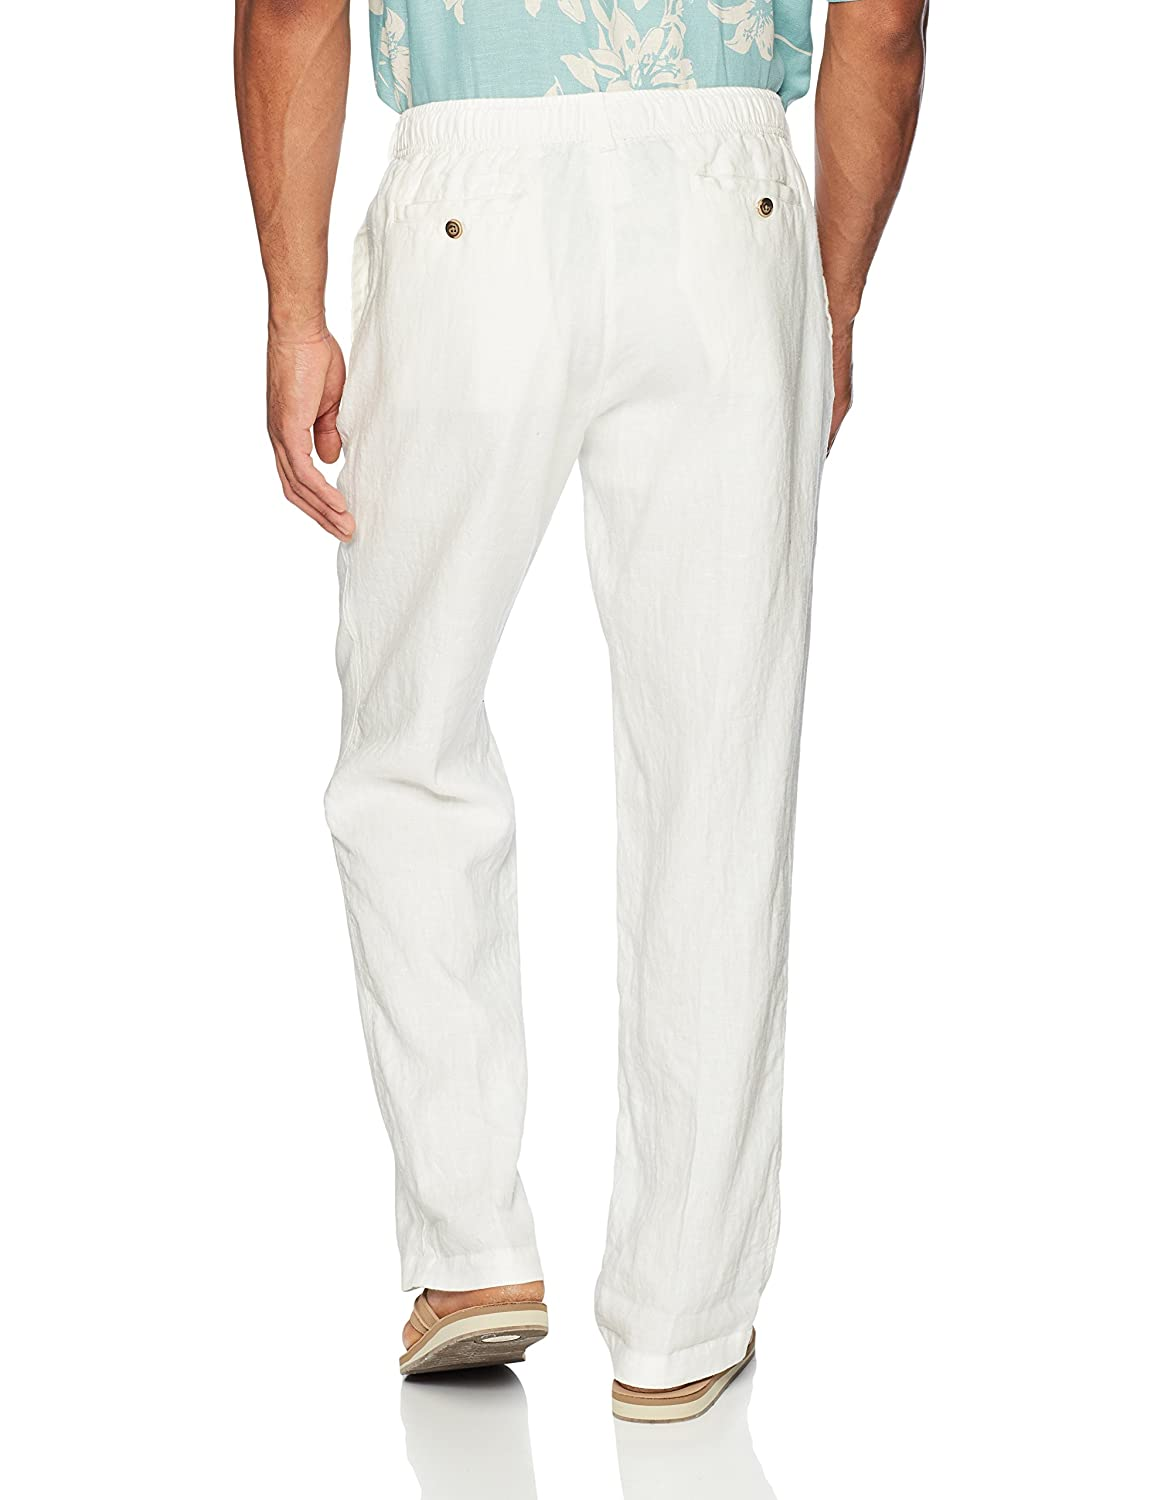 Brand 28 Palms Mens Relaxed-Fit Linen Pant with Drawstring MPM60000